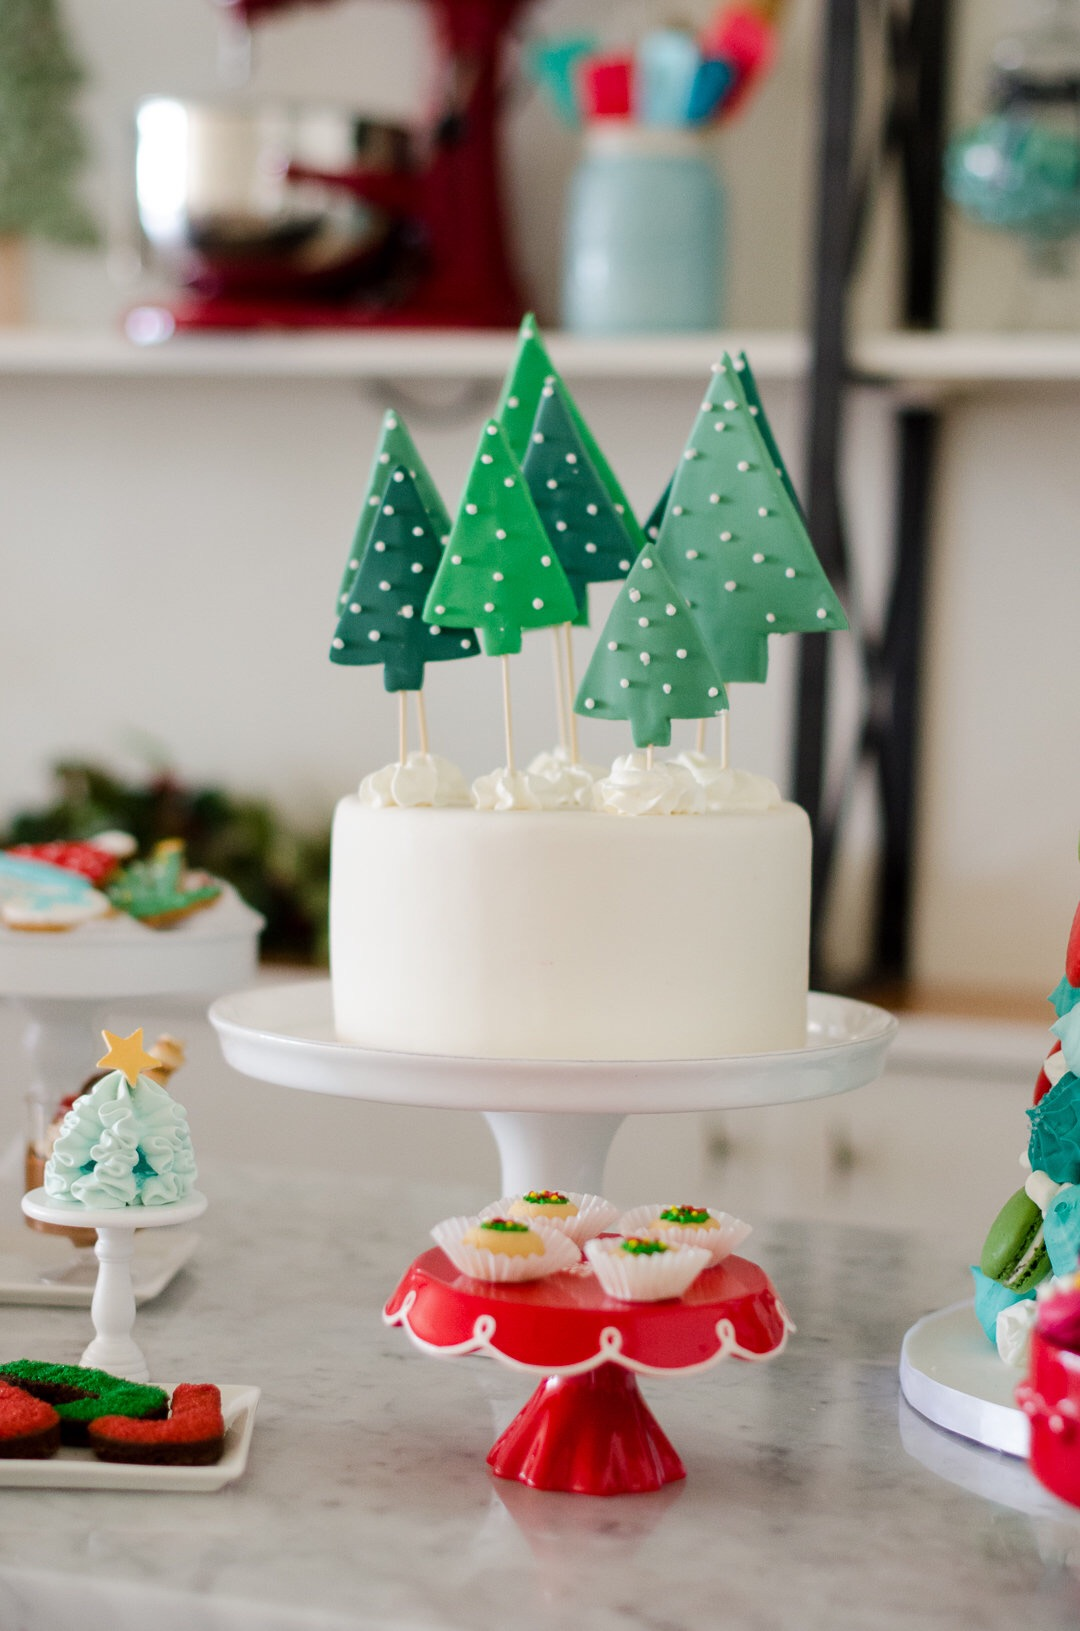 You can never have too many desserts at a Holiday party, can you? This whole party is beautiful! Love the tree toppers on the cake. See more holiday party inspiration from Austin based party stylist Mint Event Design at www.minteventdesign.com #desserttable #christmasdesserts #holidayparty #holidays #partyideas #christmasparty #holidaypartyideas